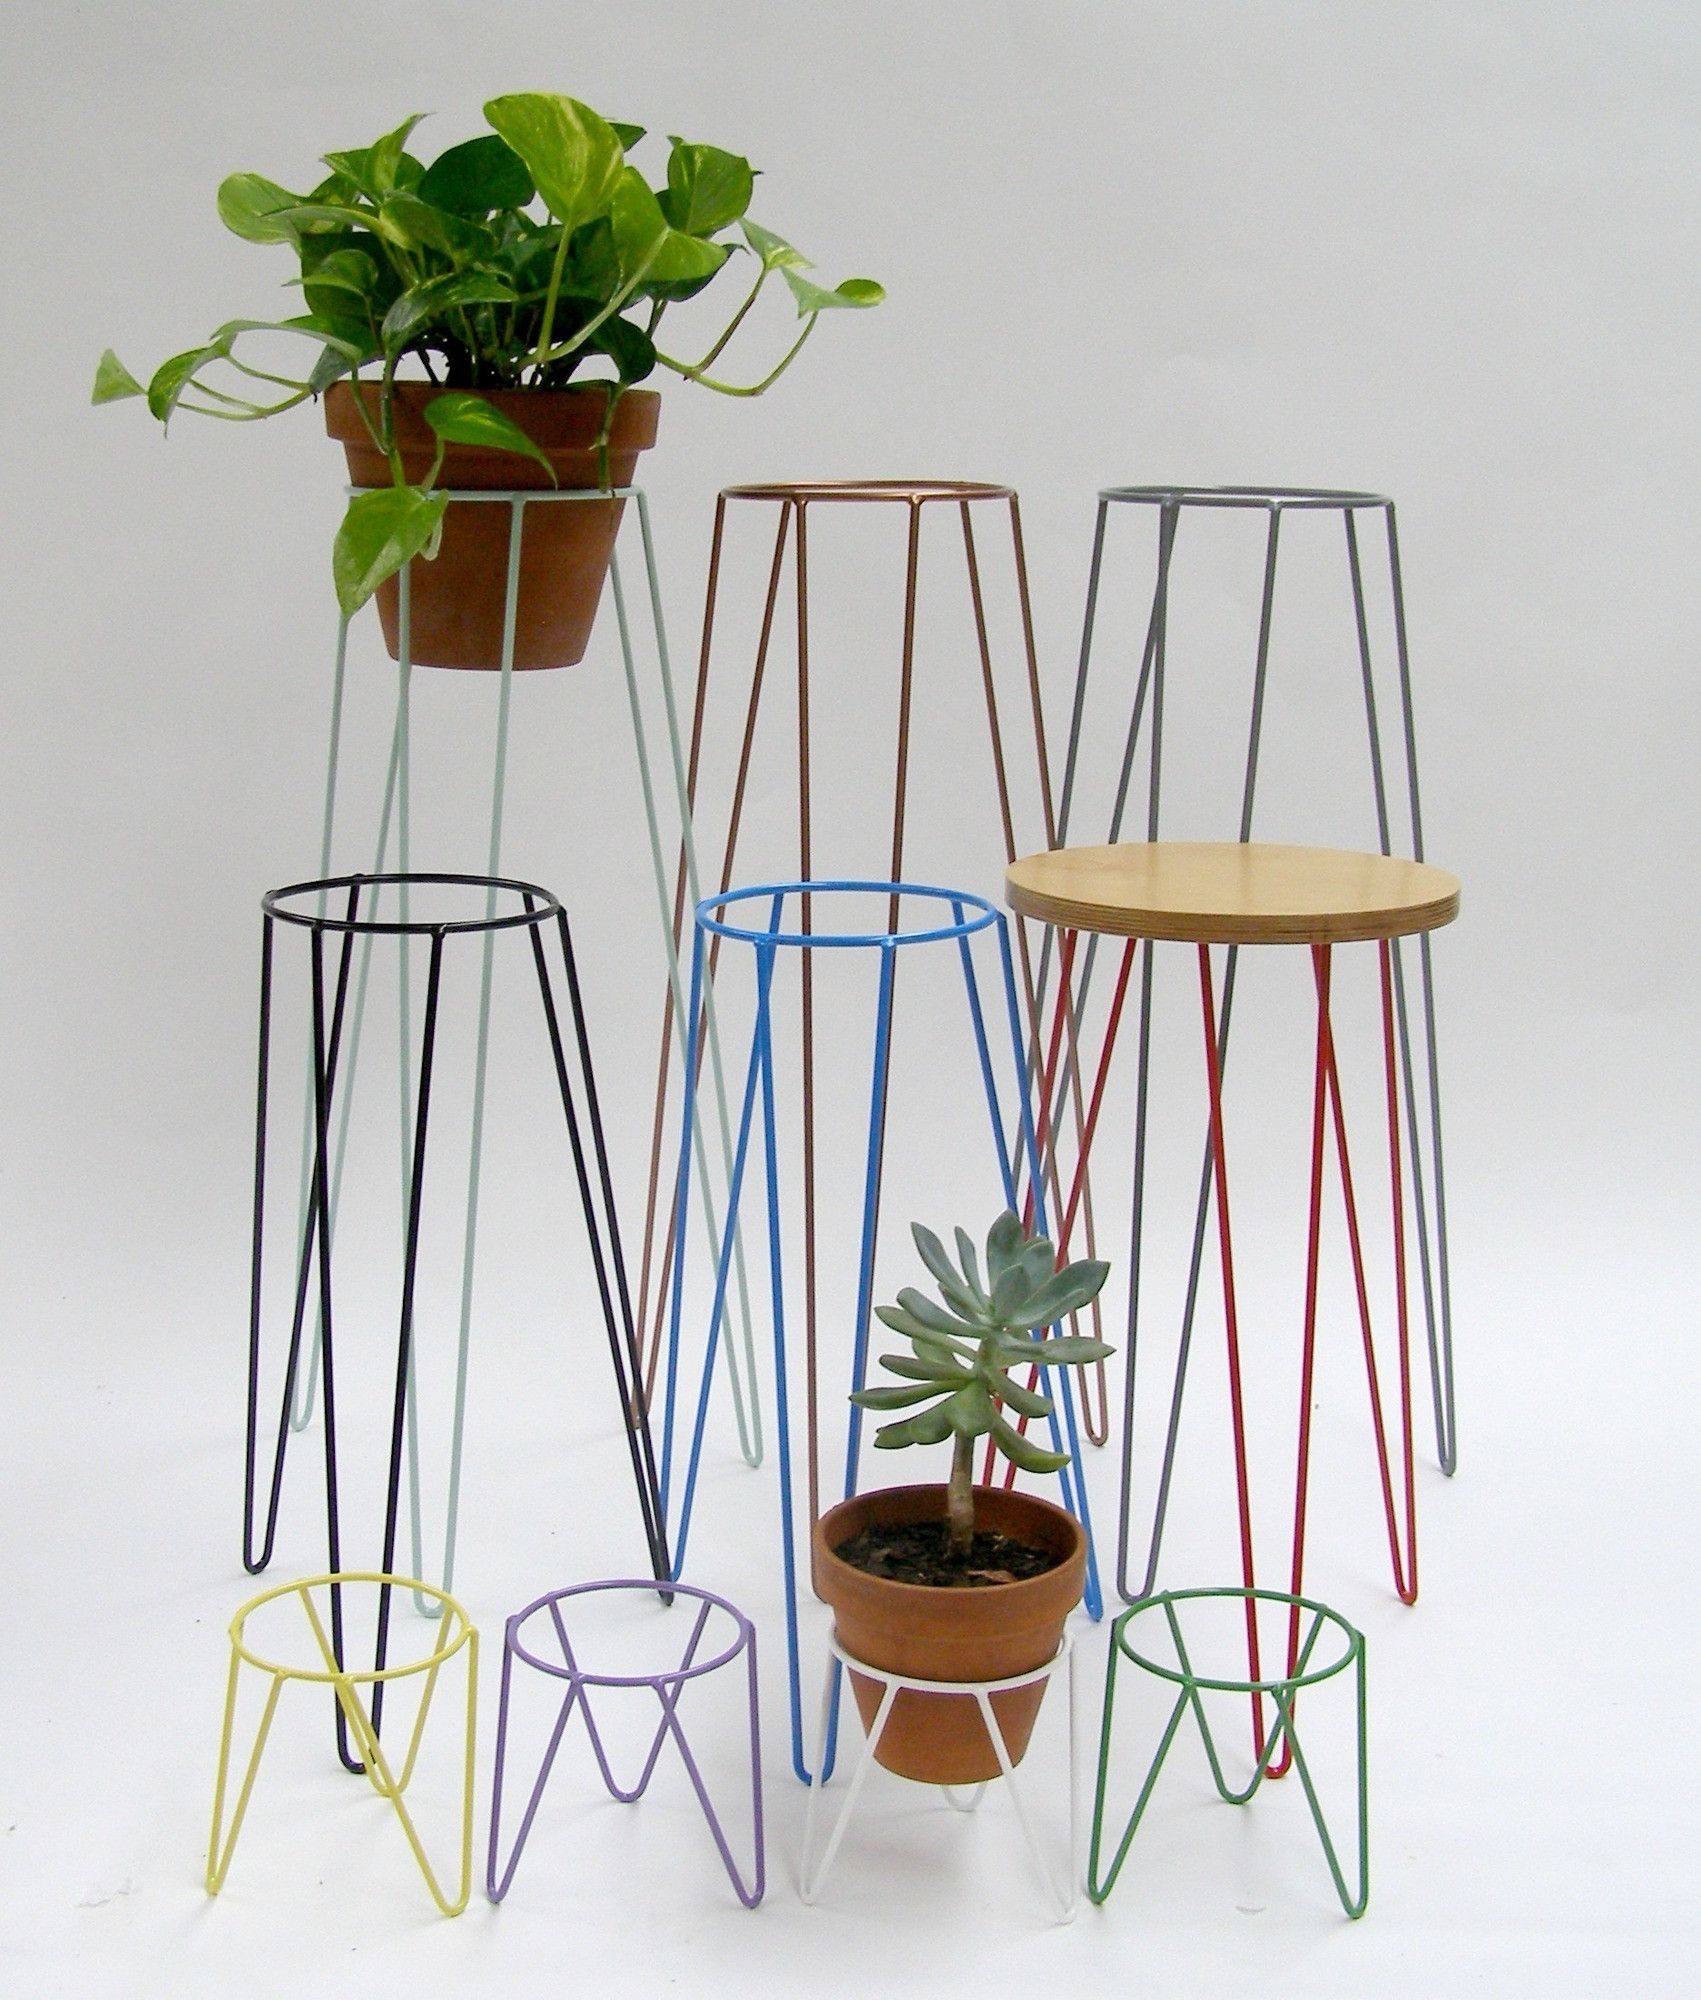 Modern Outdoor Plant Stand Mid Century Inspired Metal Plant Stands For Indoor And